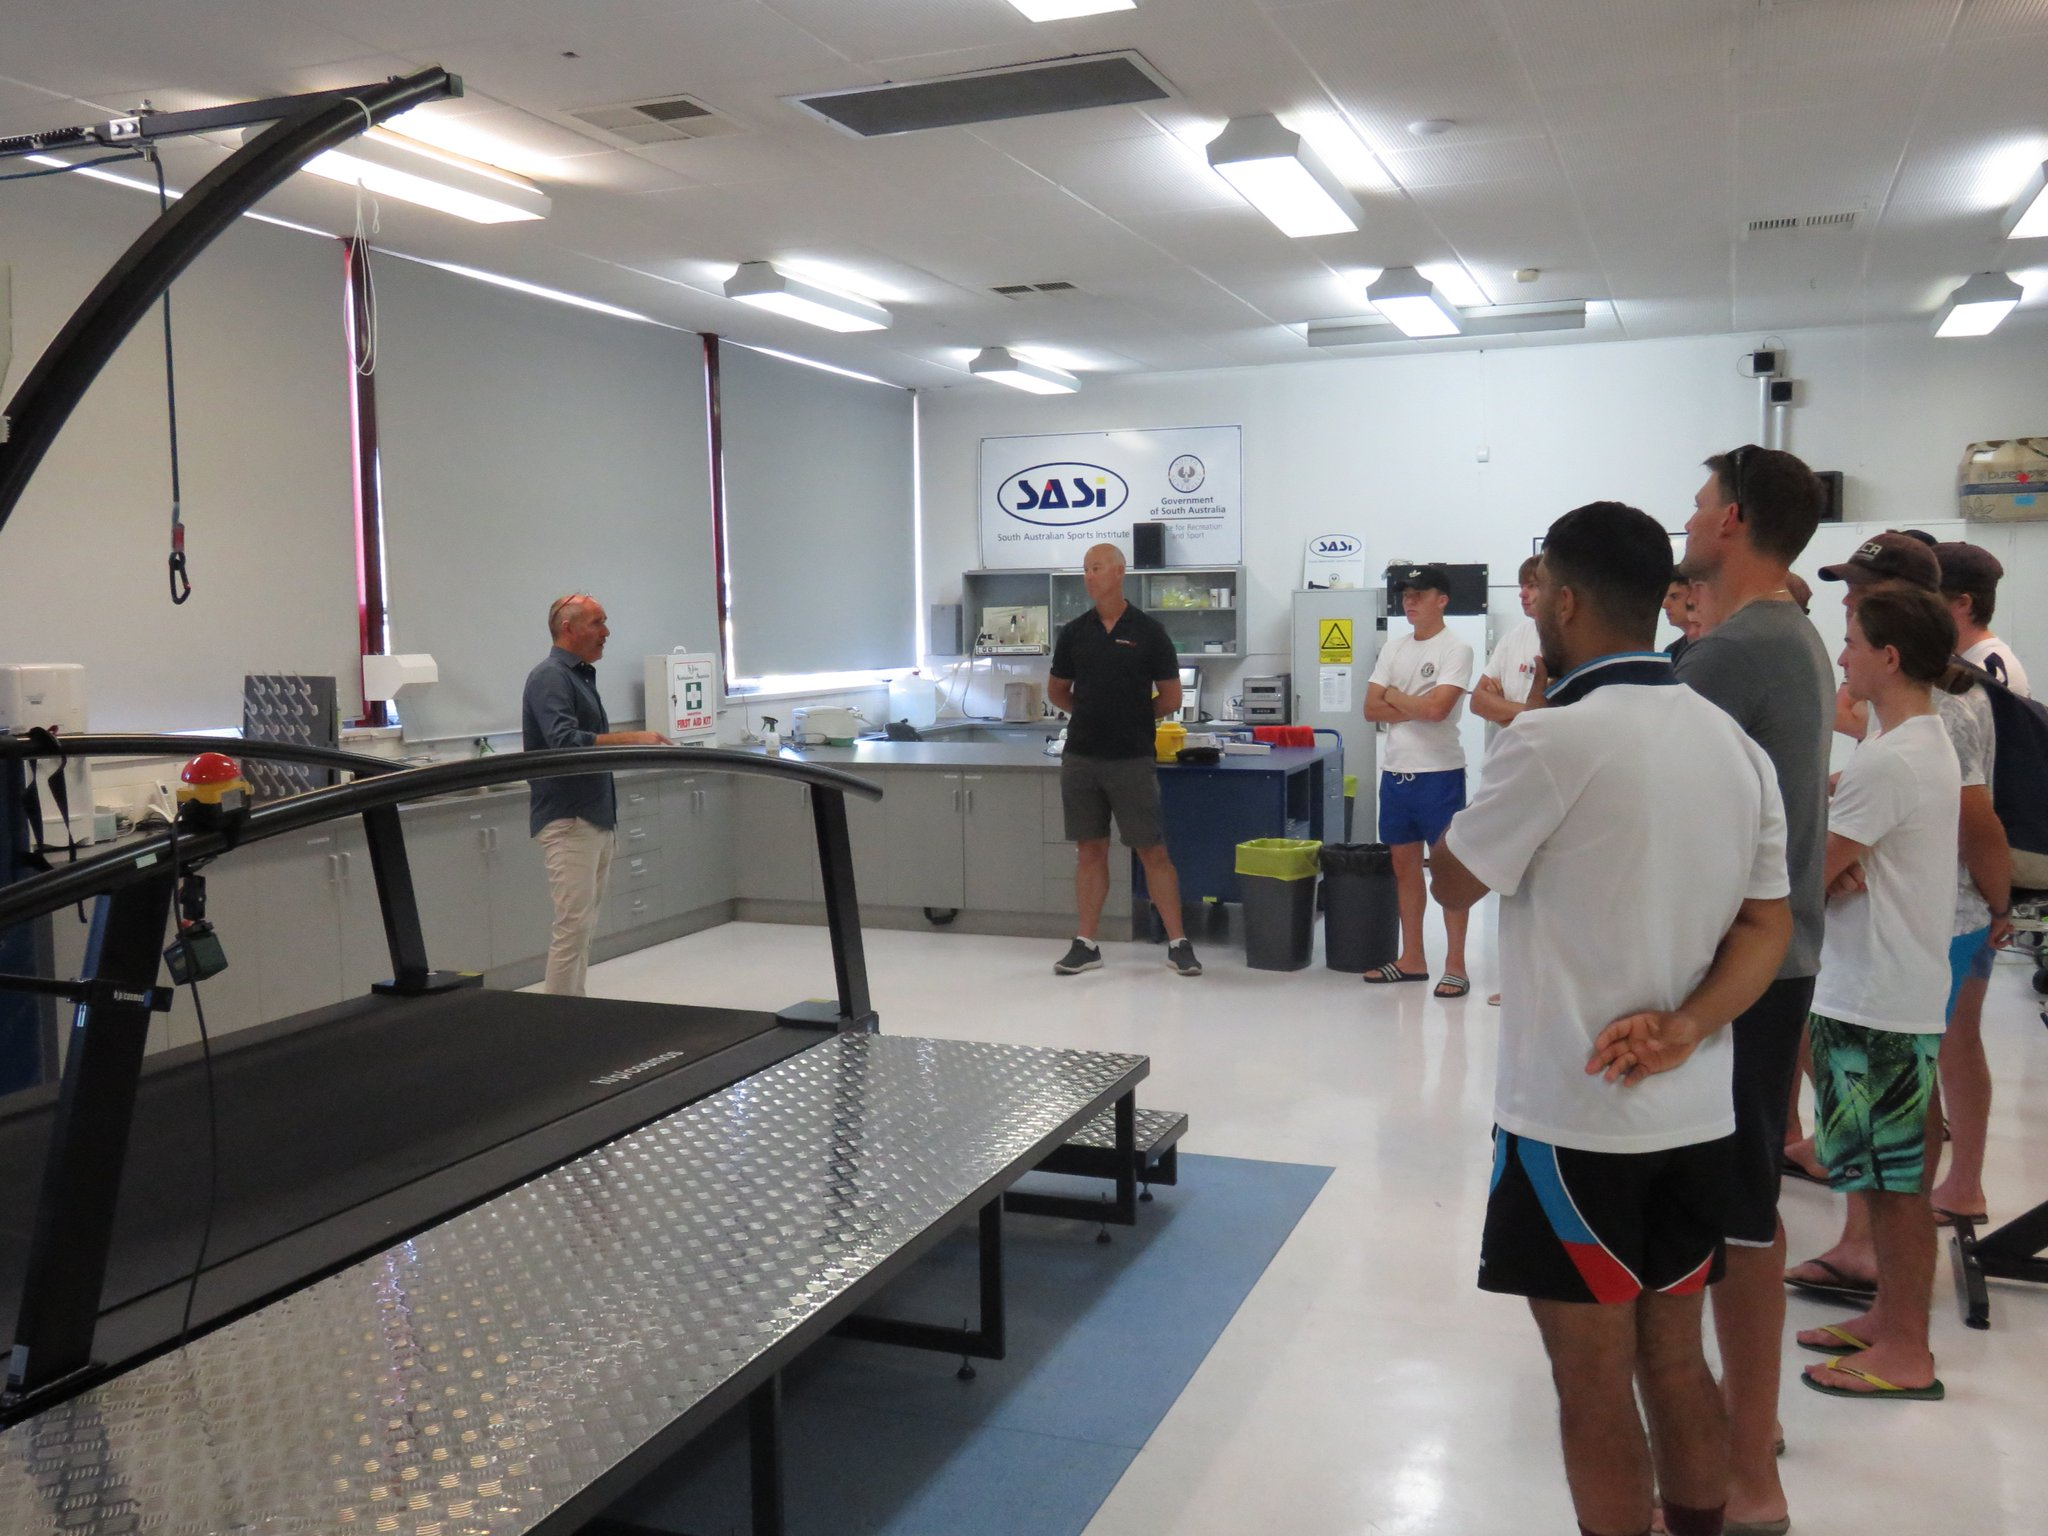 High Performance Players tour the South Australian Sports Institute (SASI)